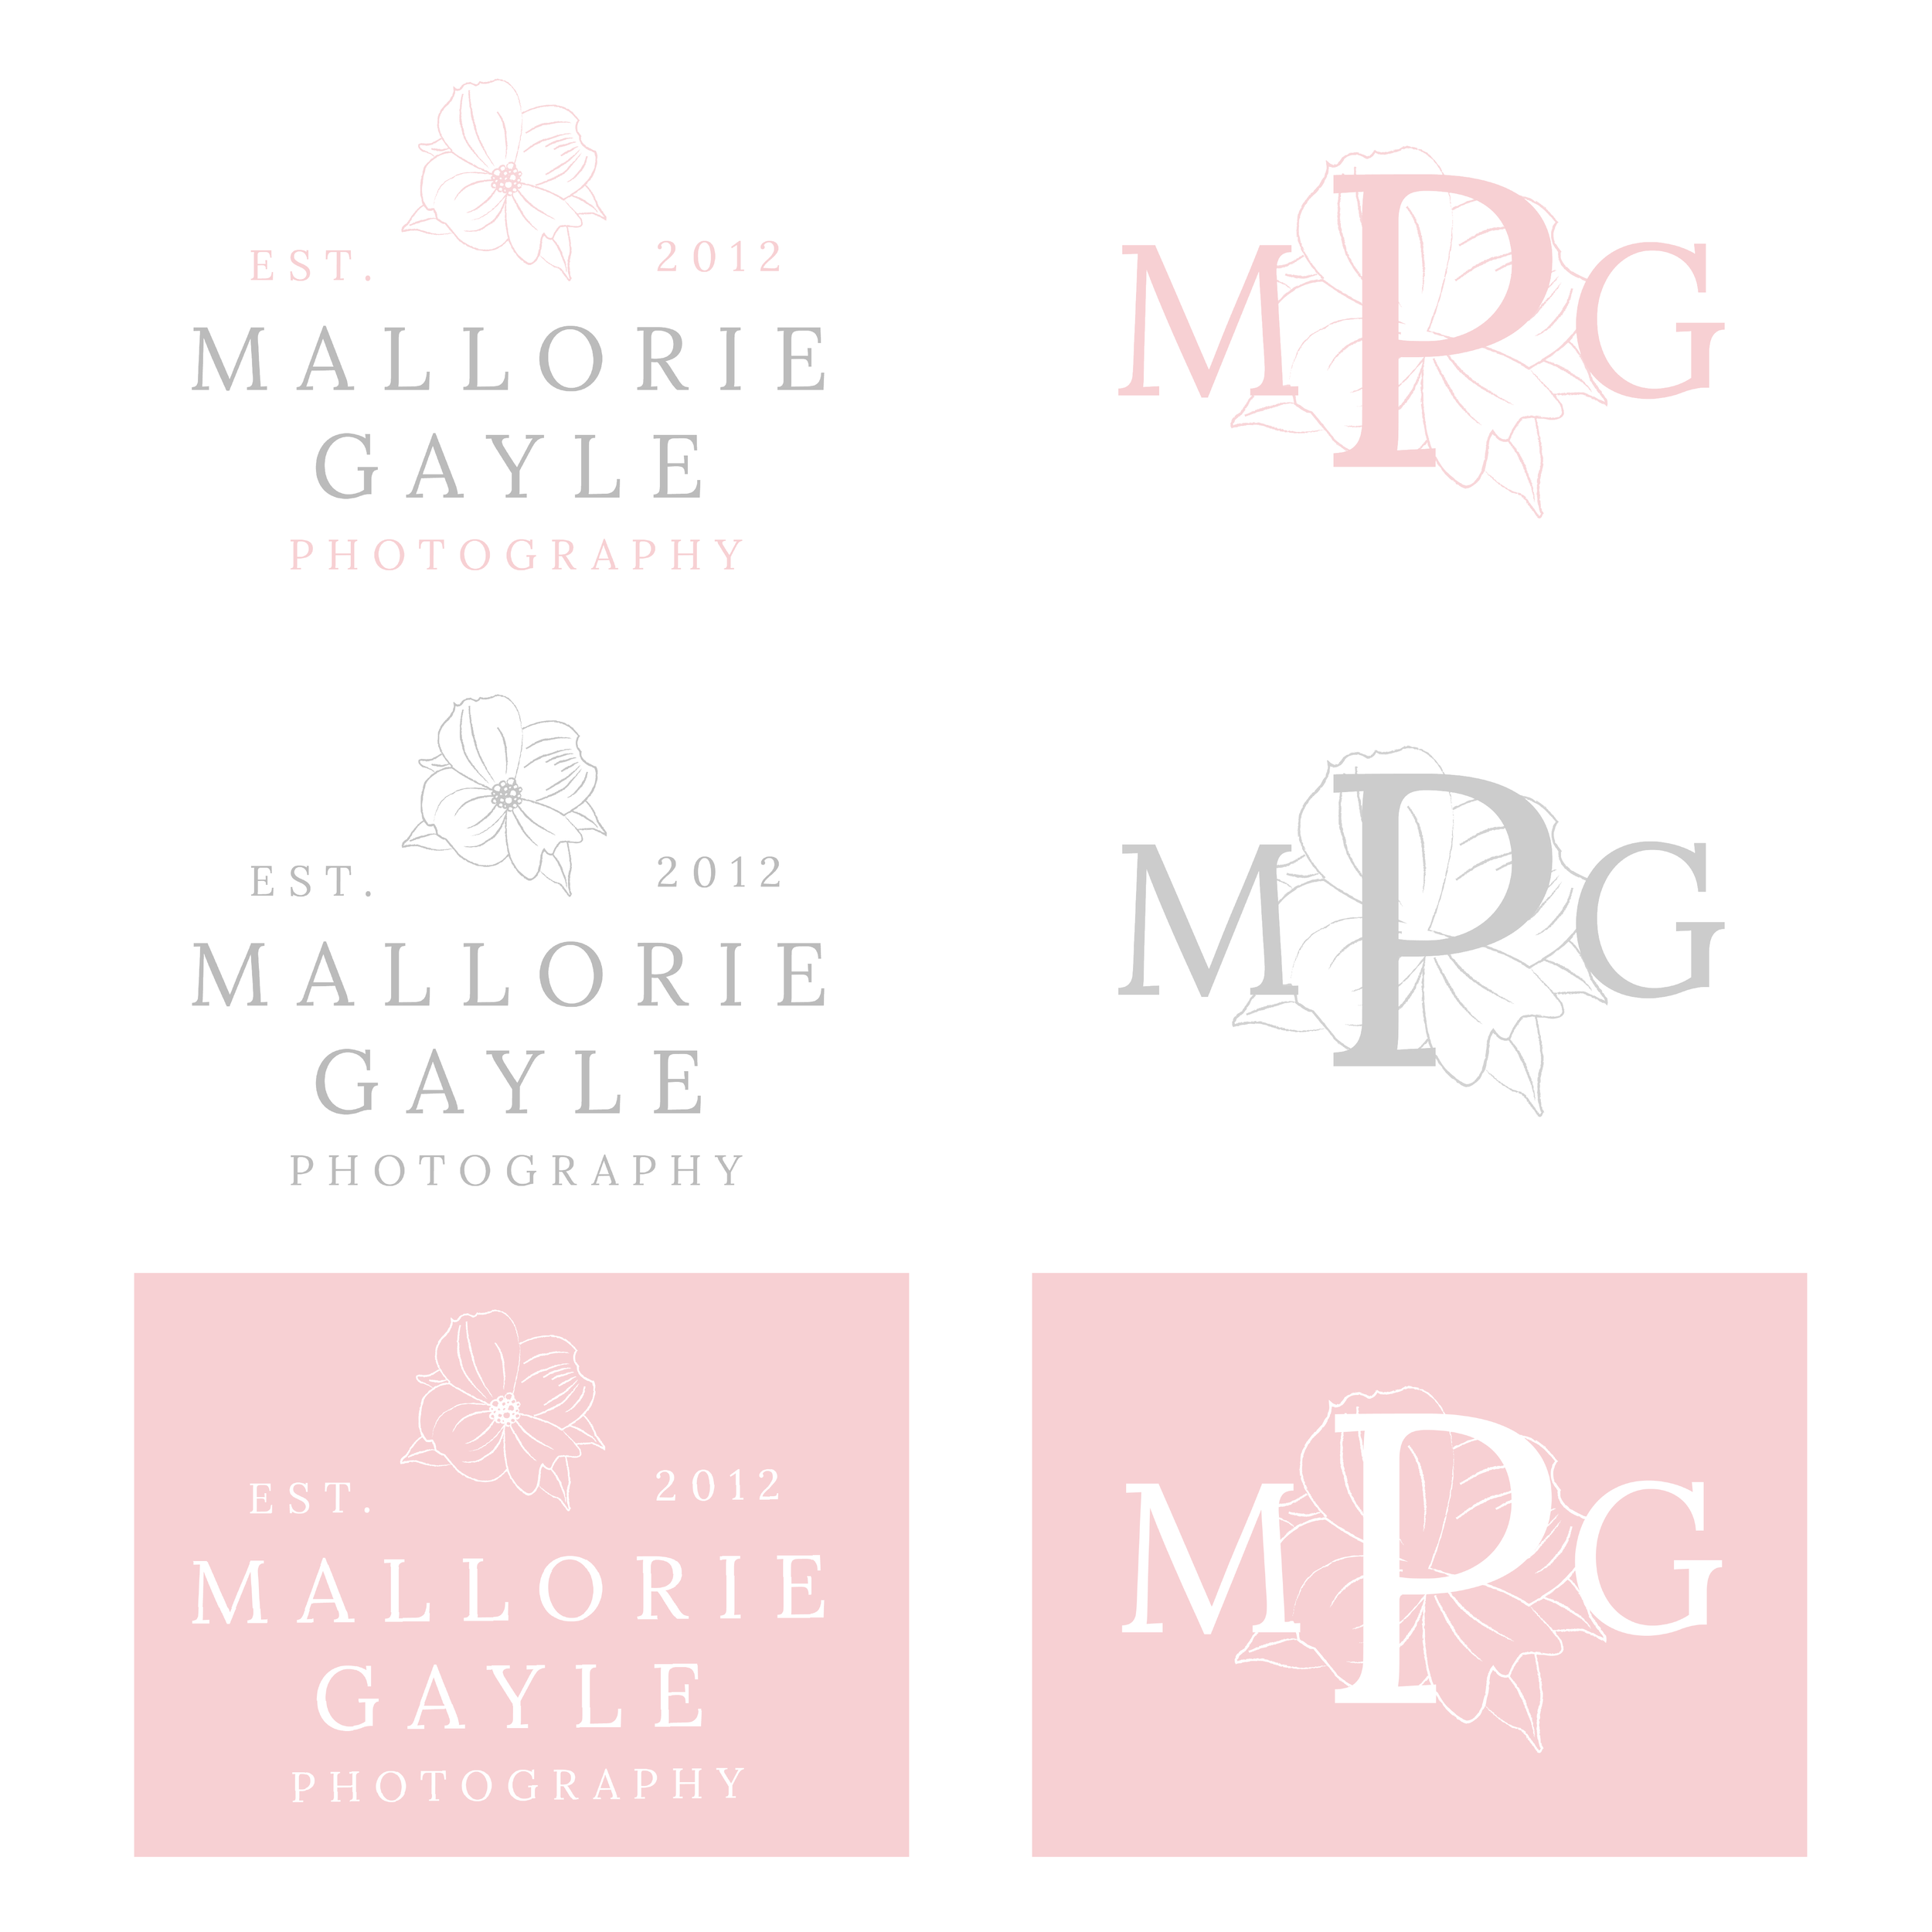 Mallorie Gayle Photography Secondary Logo